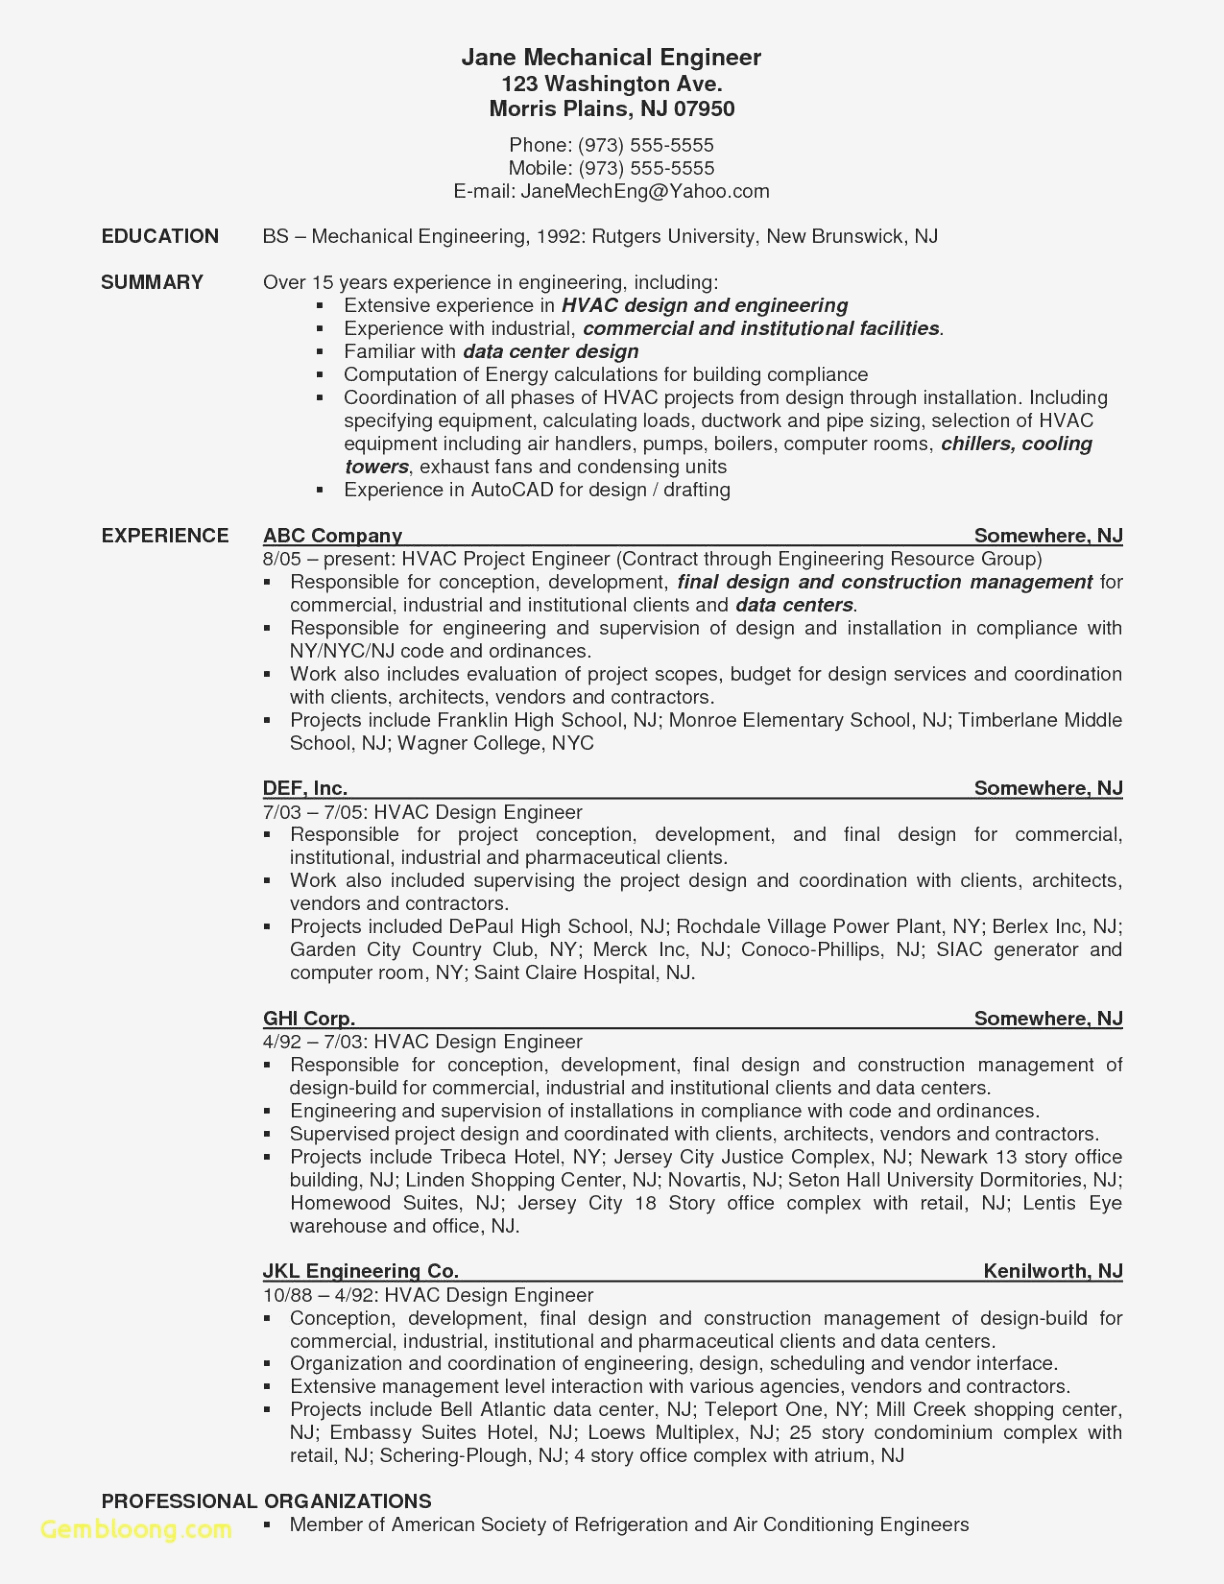 Mechanic Resume Examples 2019 , diesel mechanic resume examples 2020, auto mechanic resume examples, aircraft mechanic resume examples, automotive mechanic resume examples, military mechanic resume examples